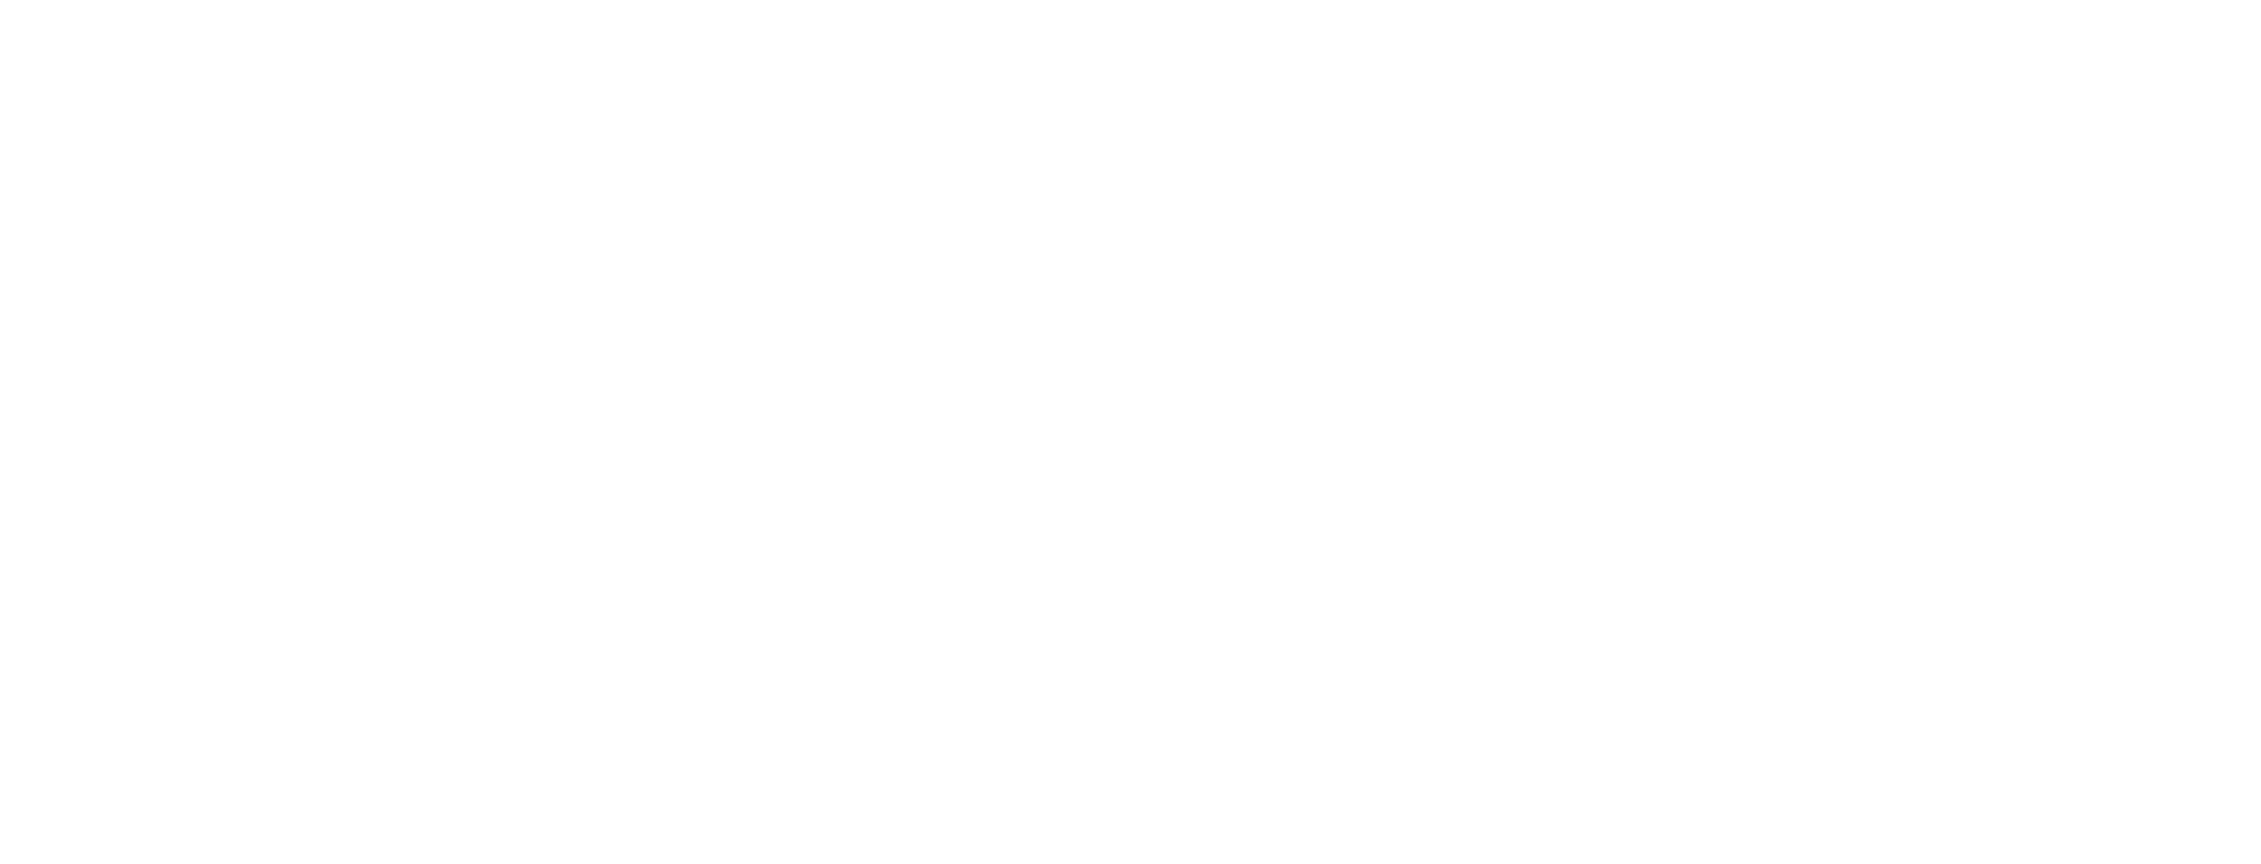 Cultural Route Of Council Of Europe logo